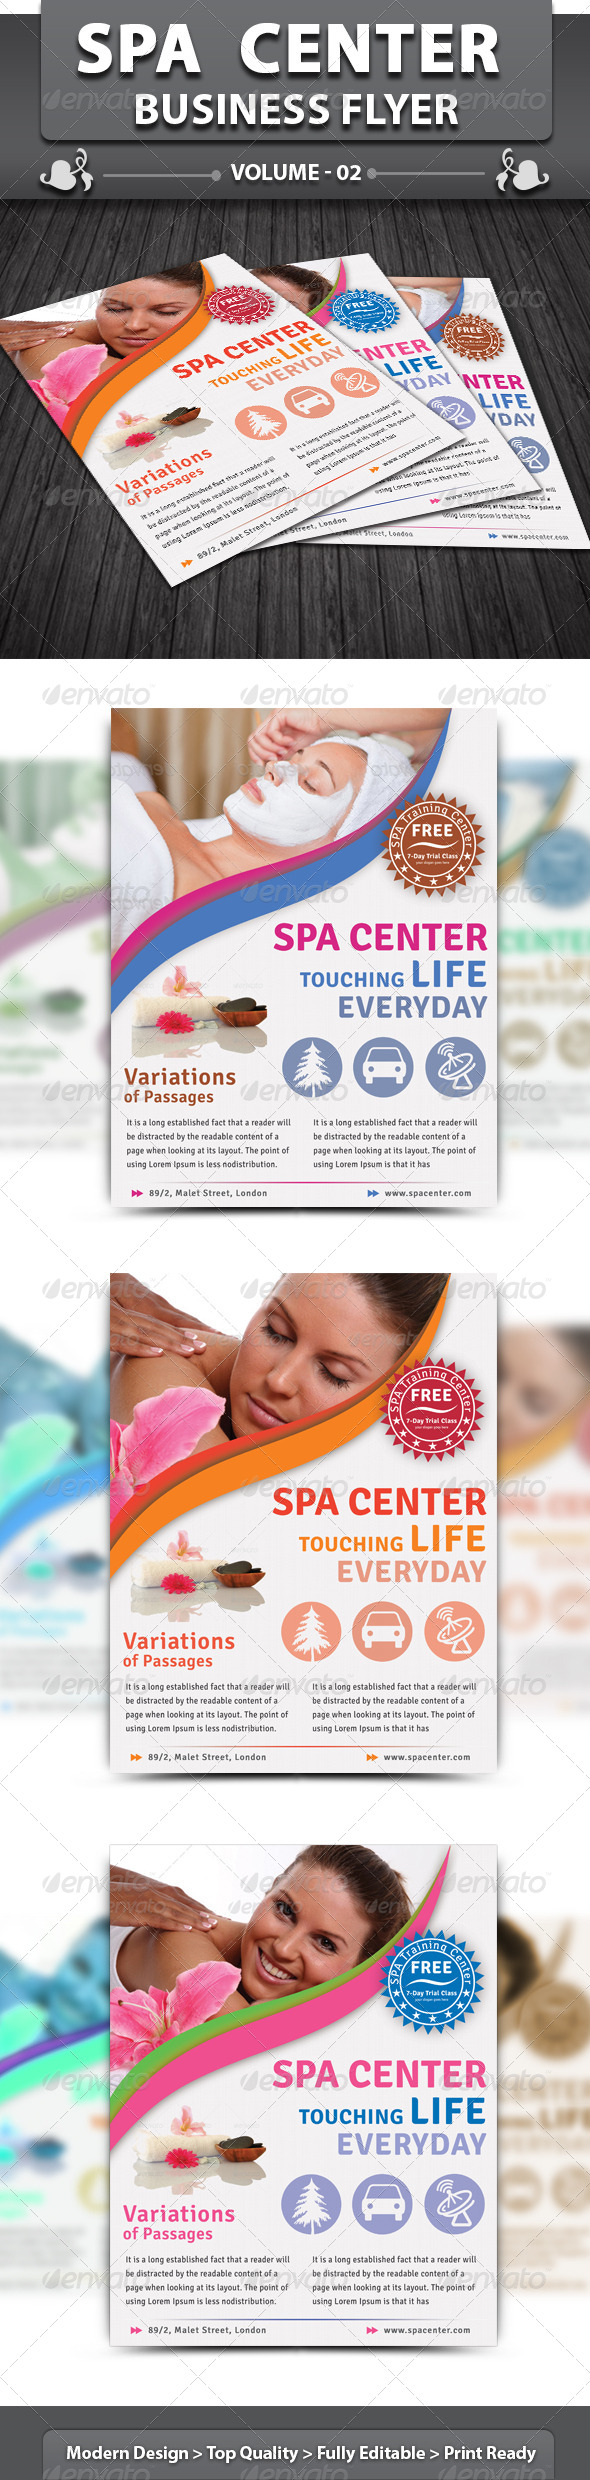 SPA Training Center Business Flyer v2 - Corporate Flyers